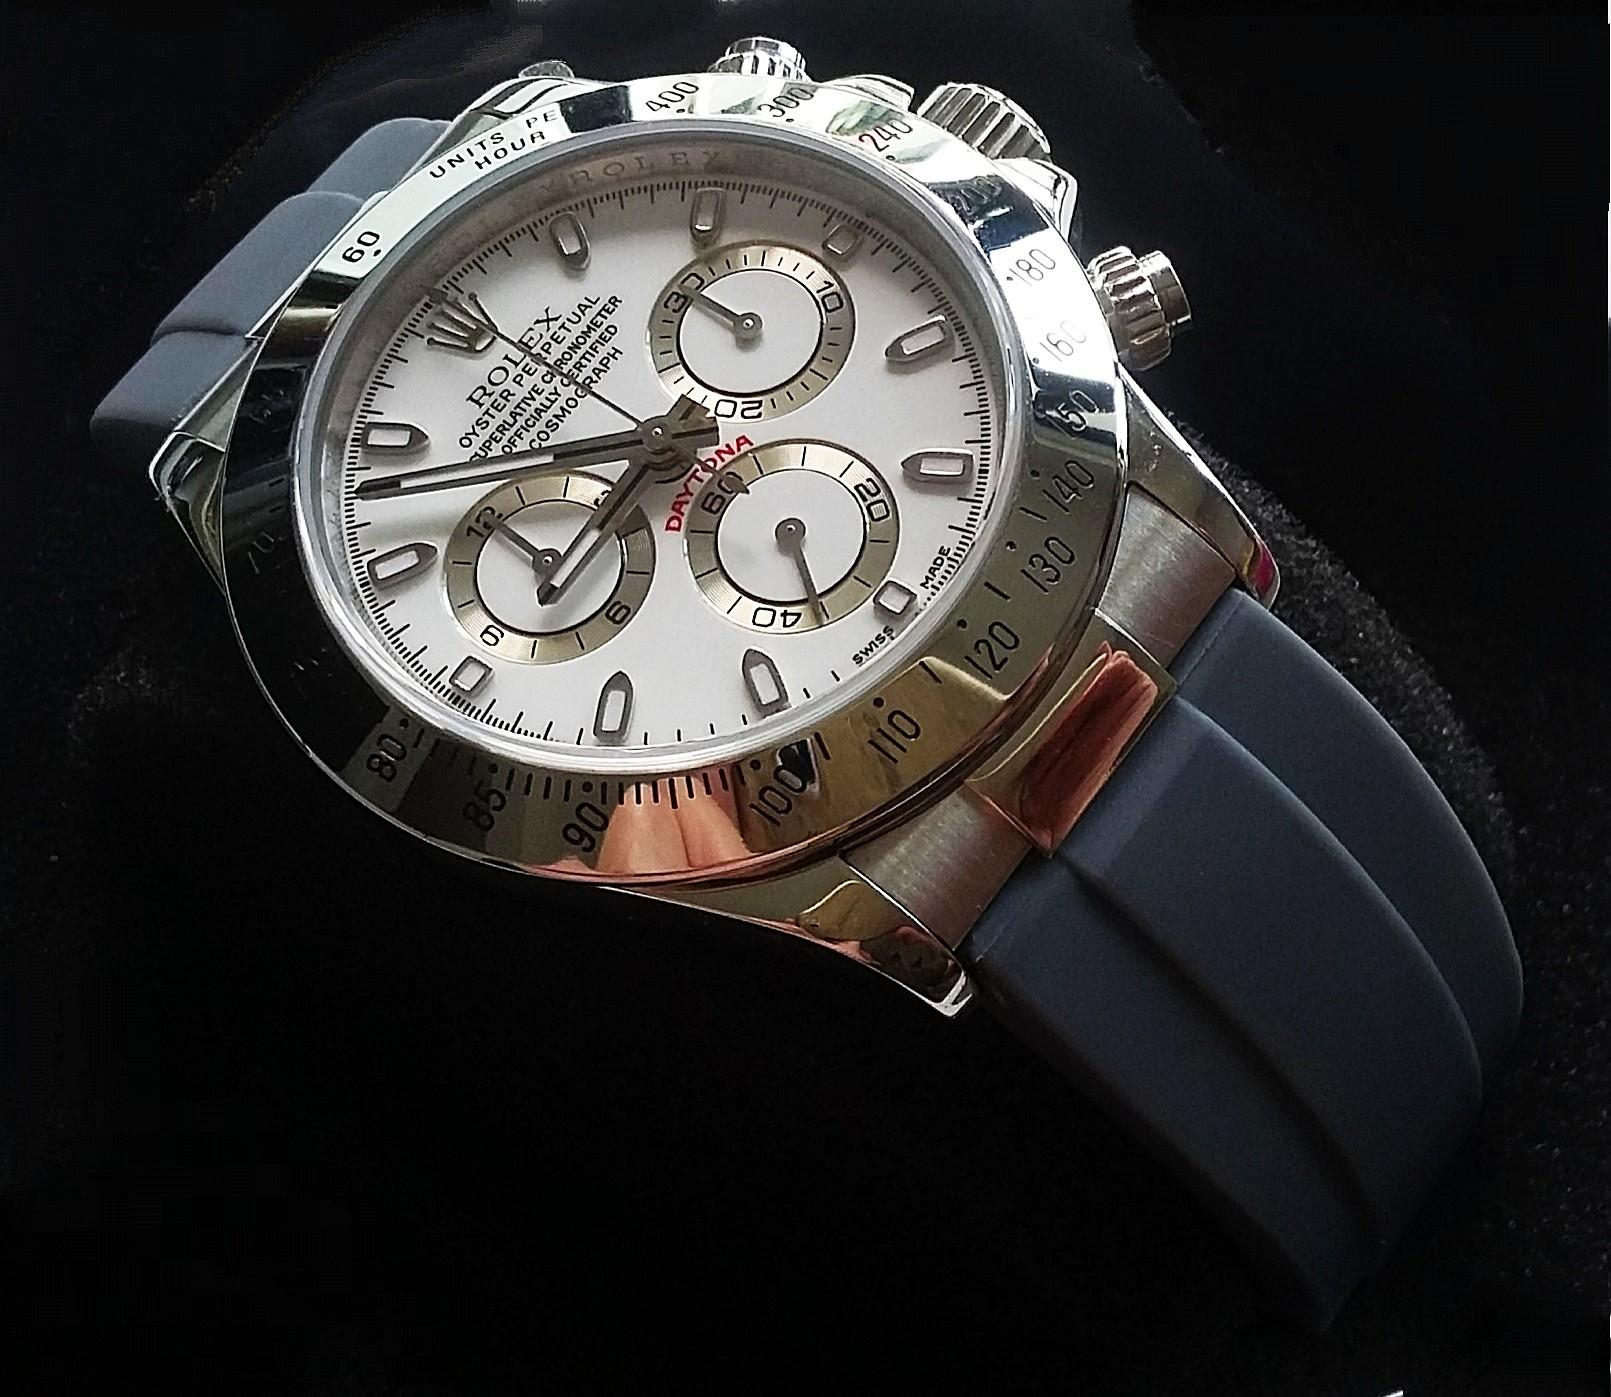 20mm GULL GREY RUBBER STRAP W STAINLESS STEEL ENDLINK & CLASP FIR ROLEX DAYTONA (PRICE INCLUDES FITMENT)